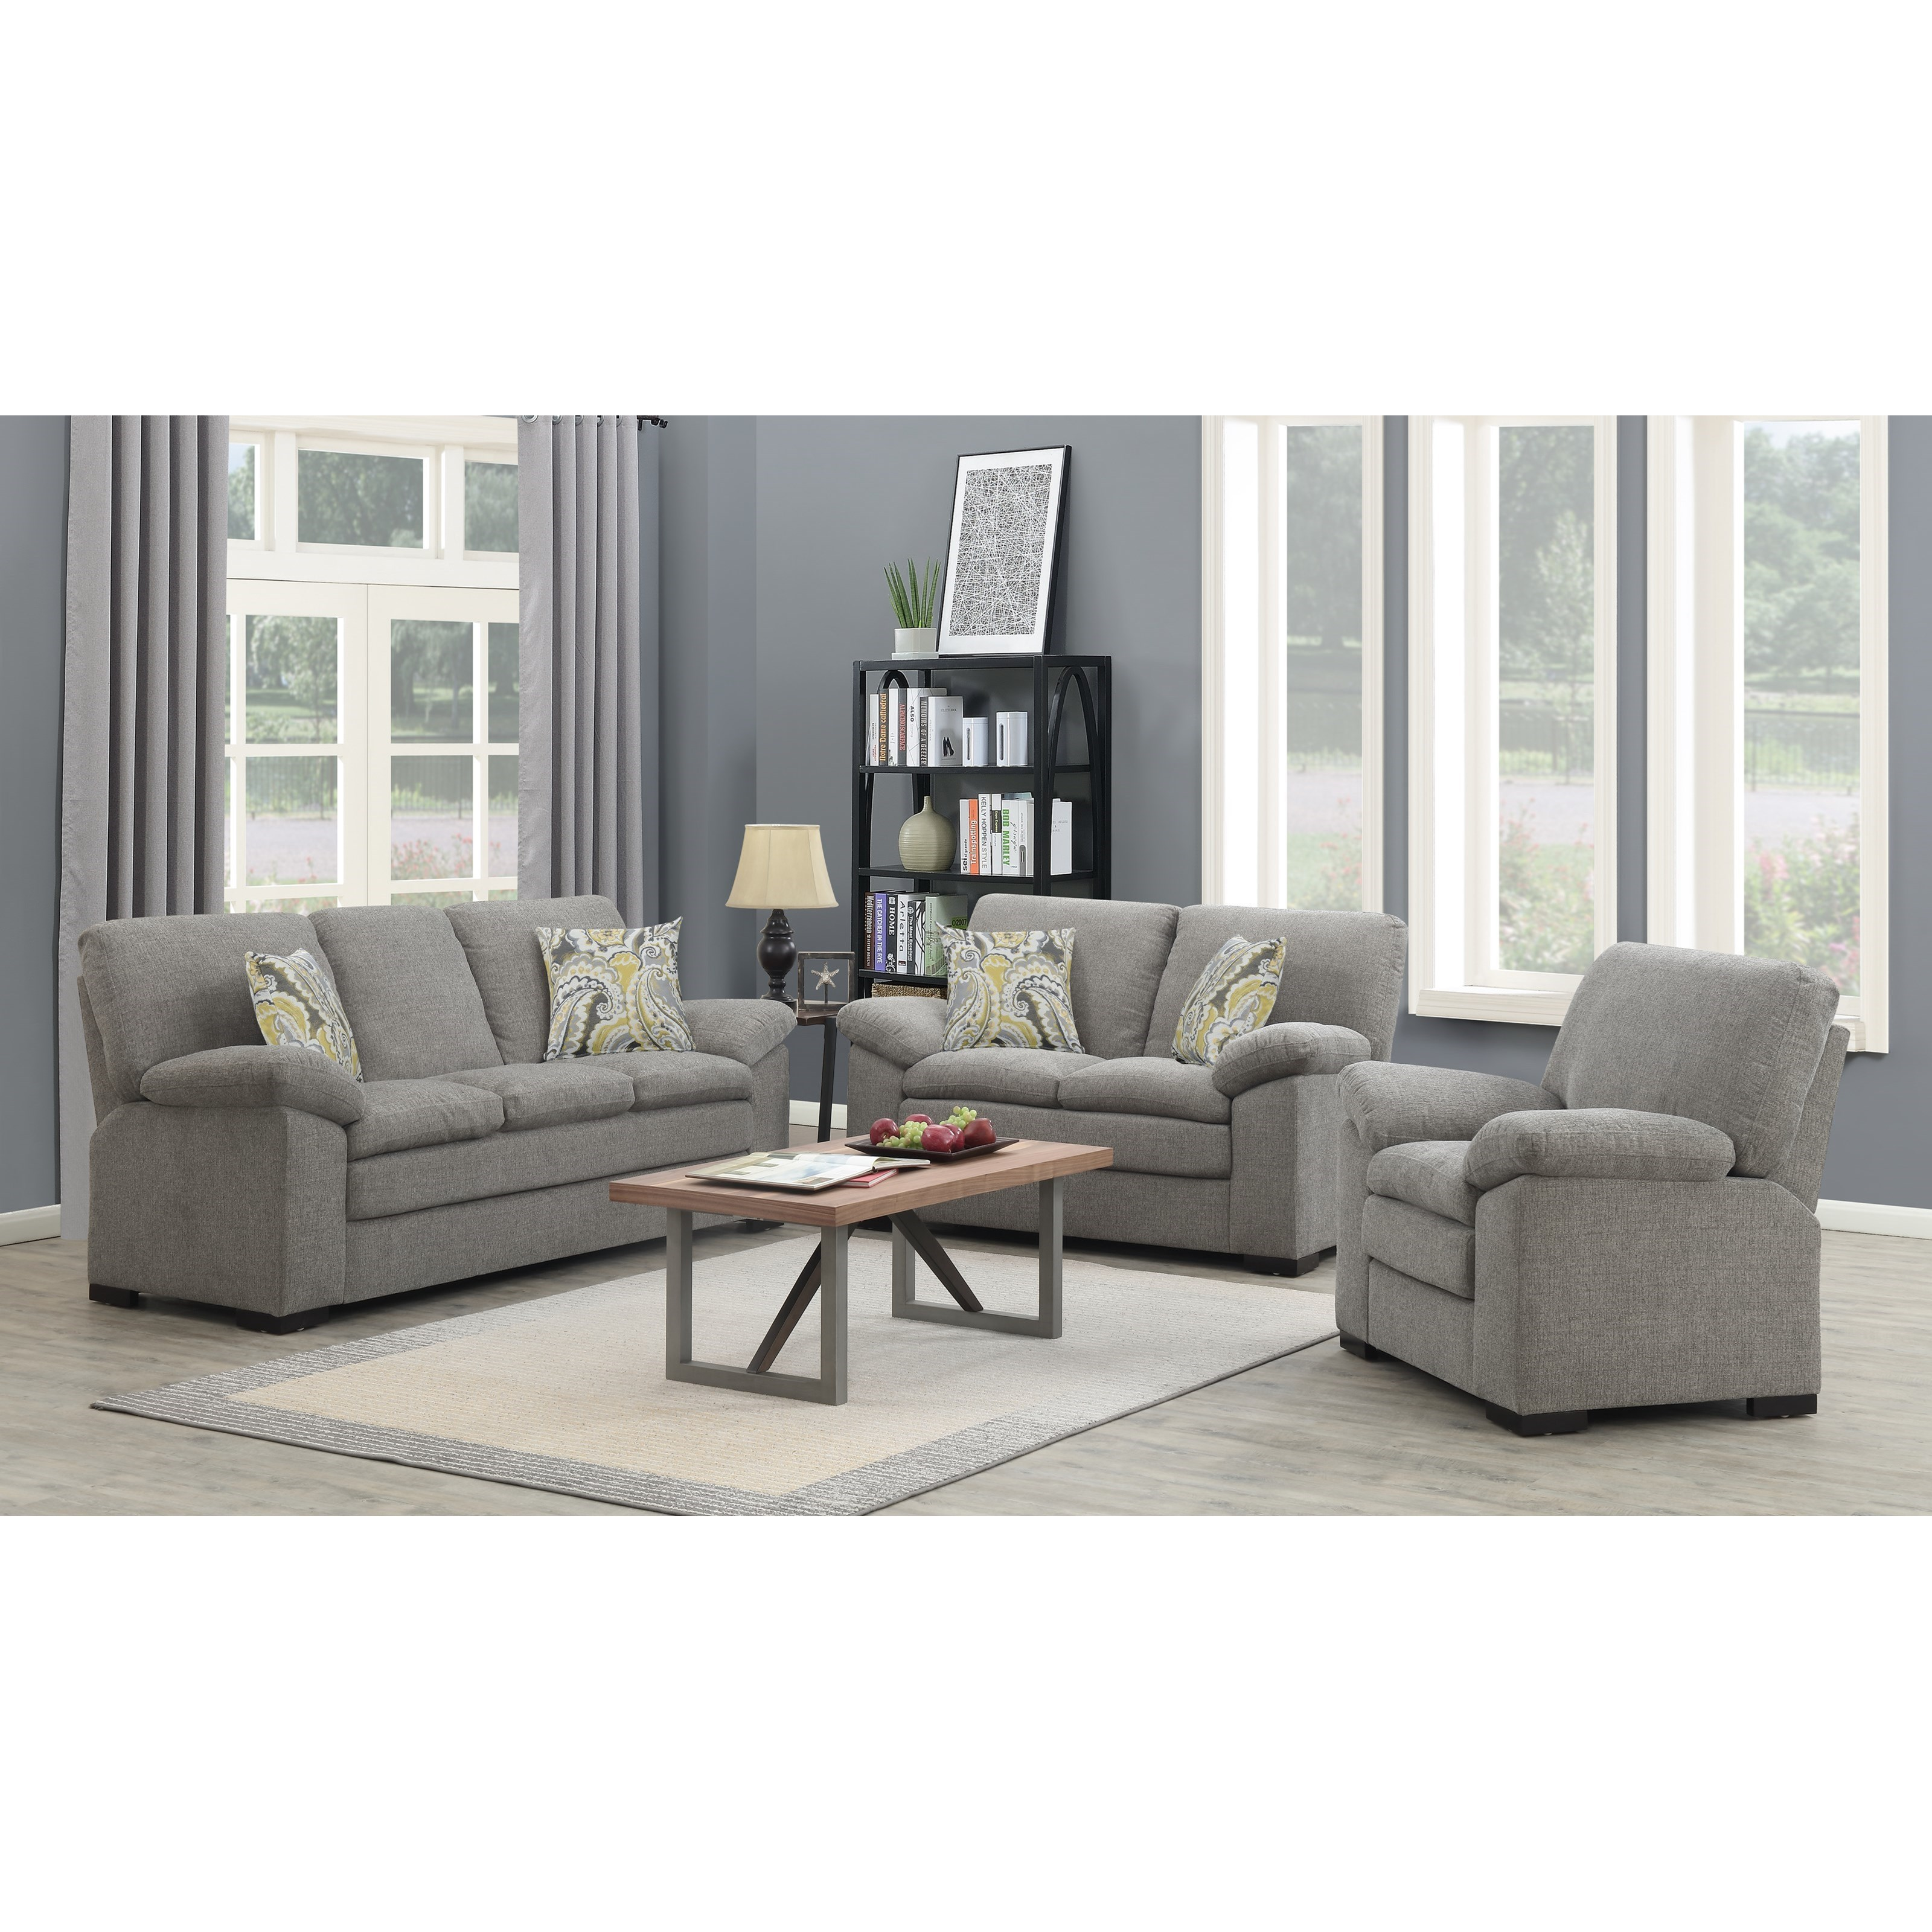 Grandview Living Room Group by Emerald at Suburban Furniture